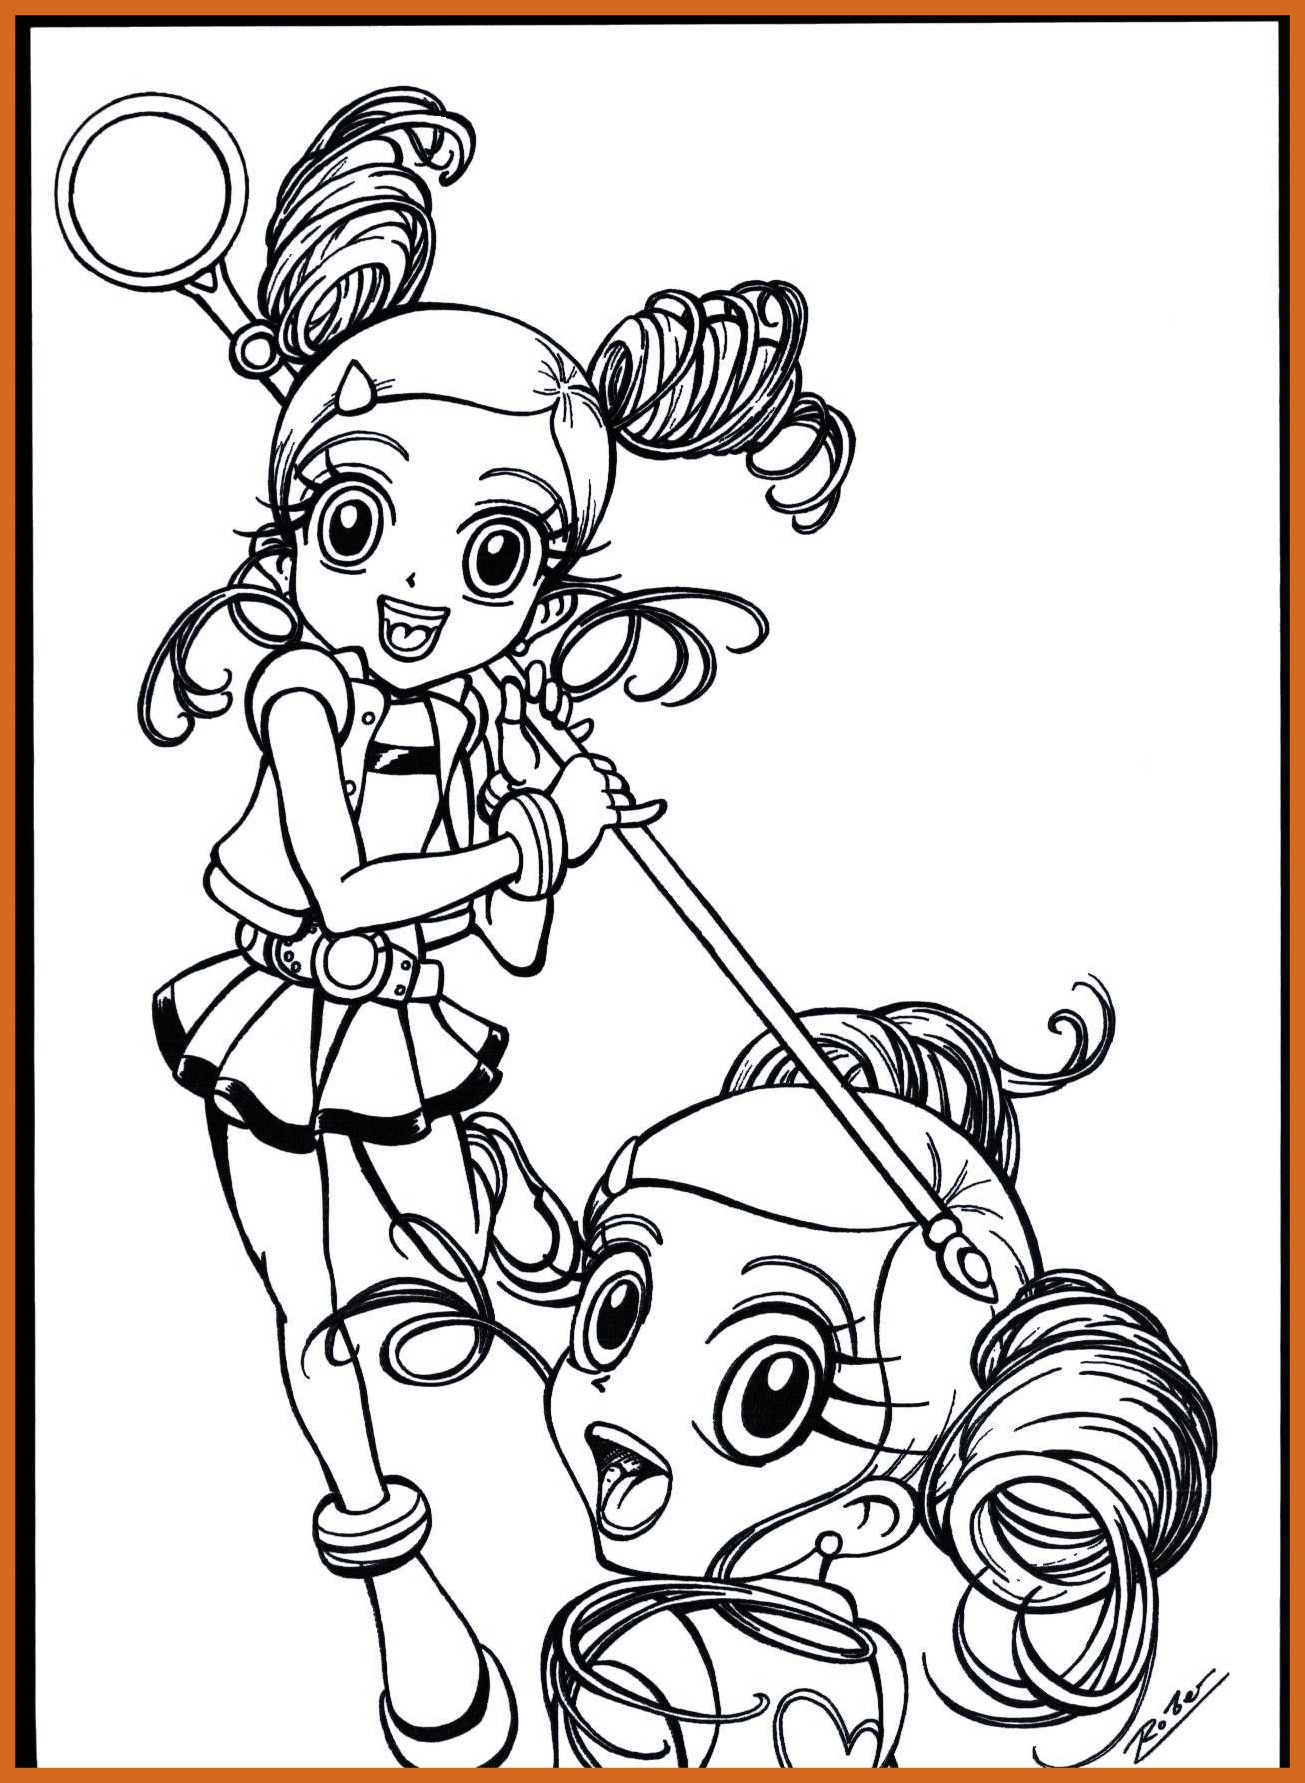 Powerpuff Coloring Pages At Getdrawings Com Free For Personal Use